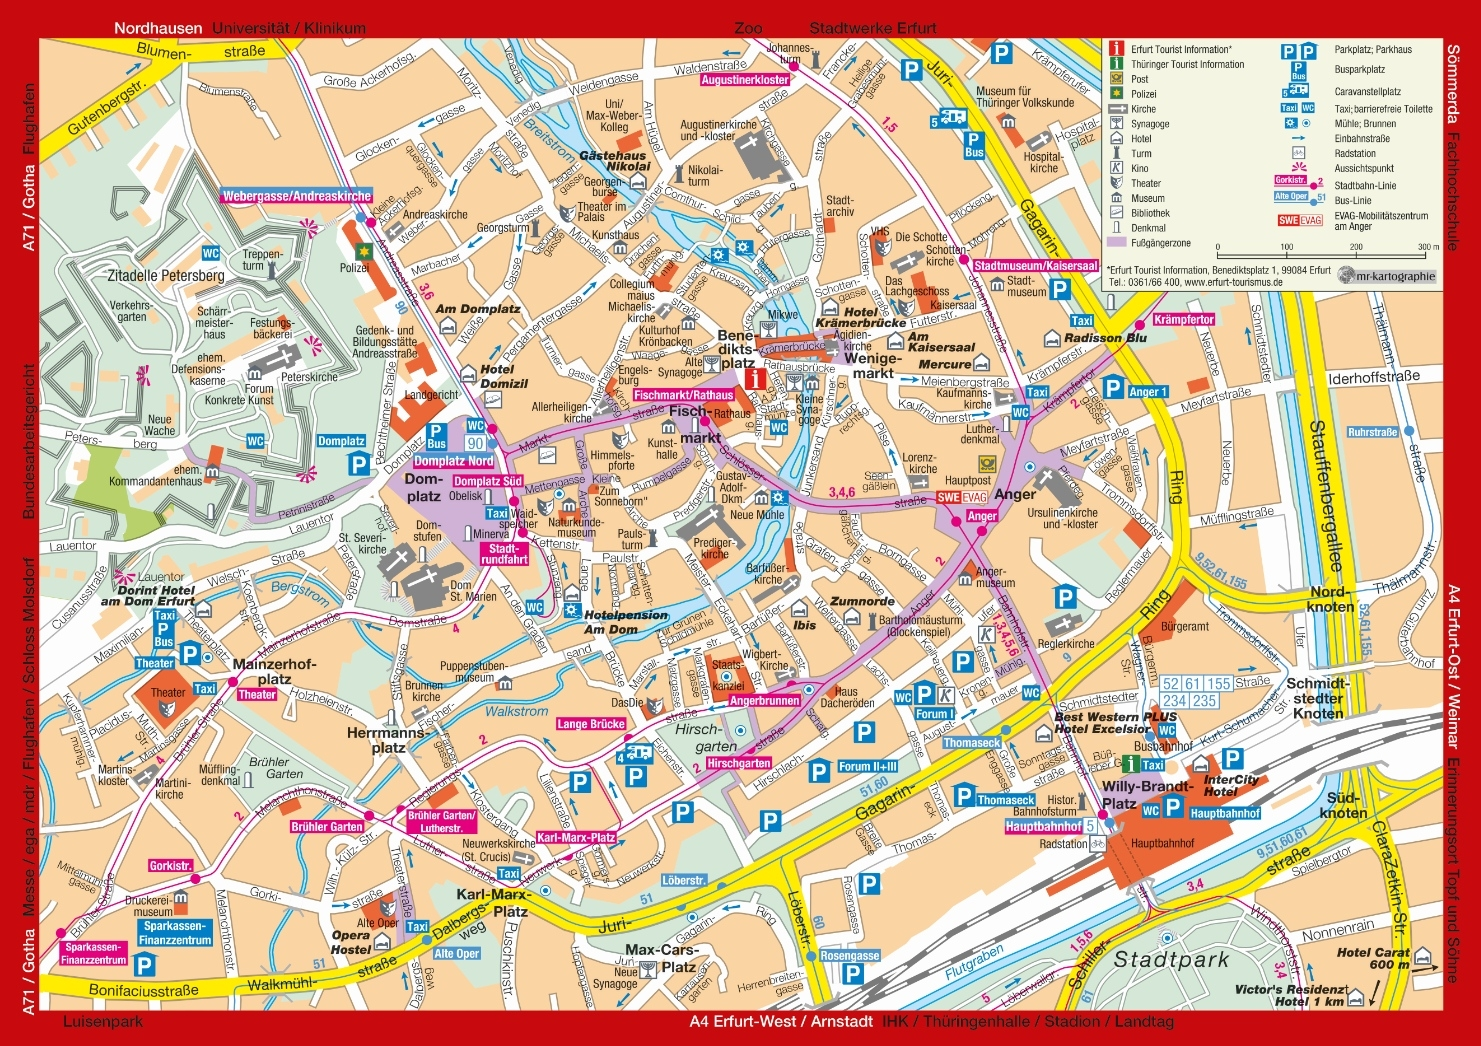 Map Of Erfurt - Location And Travel Information - Erfurt Tourismus with regard to Erfurt Germany Map